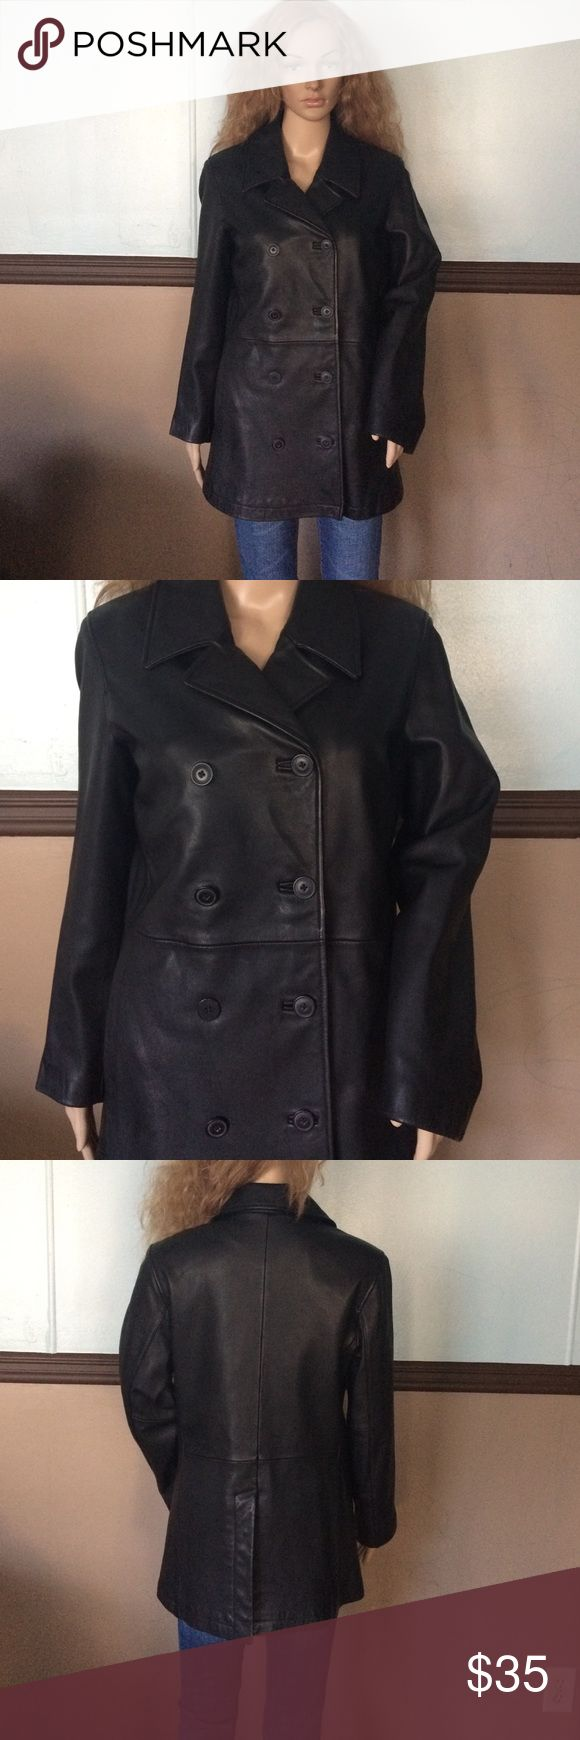 Gap jacket 100% leather Get condition GAP Jackets & Coats